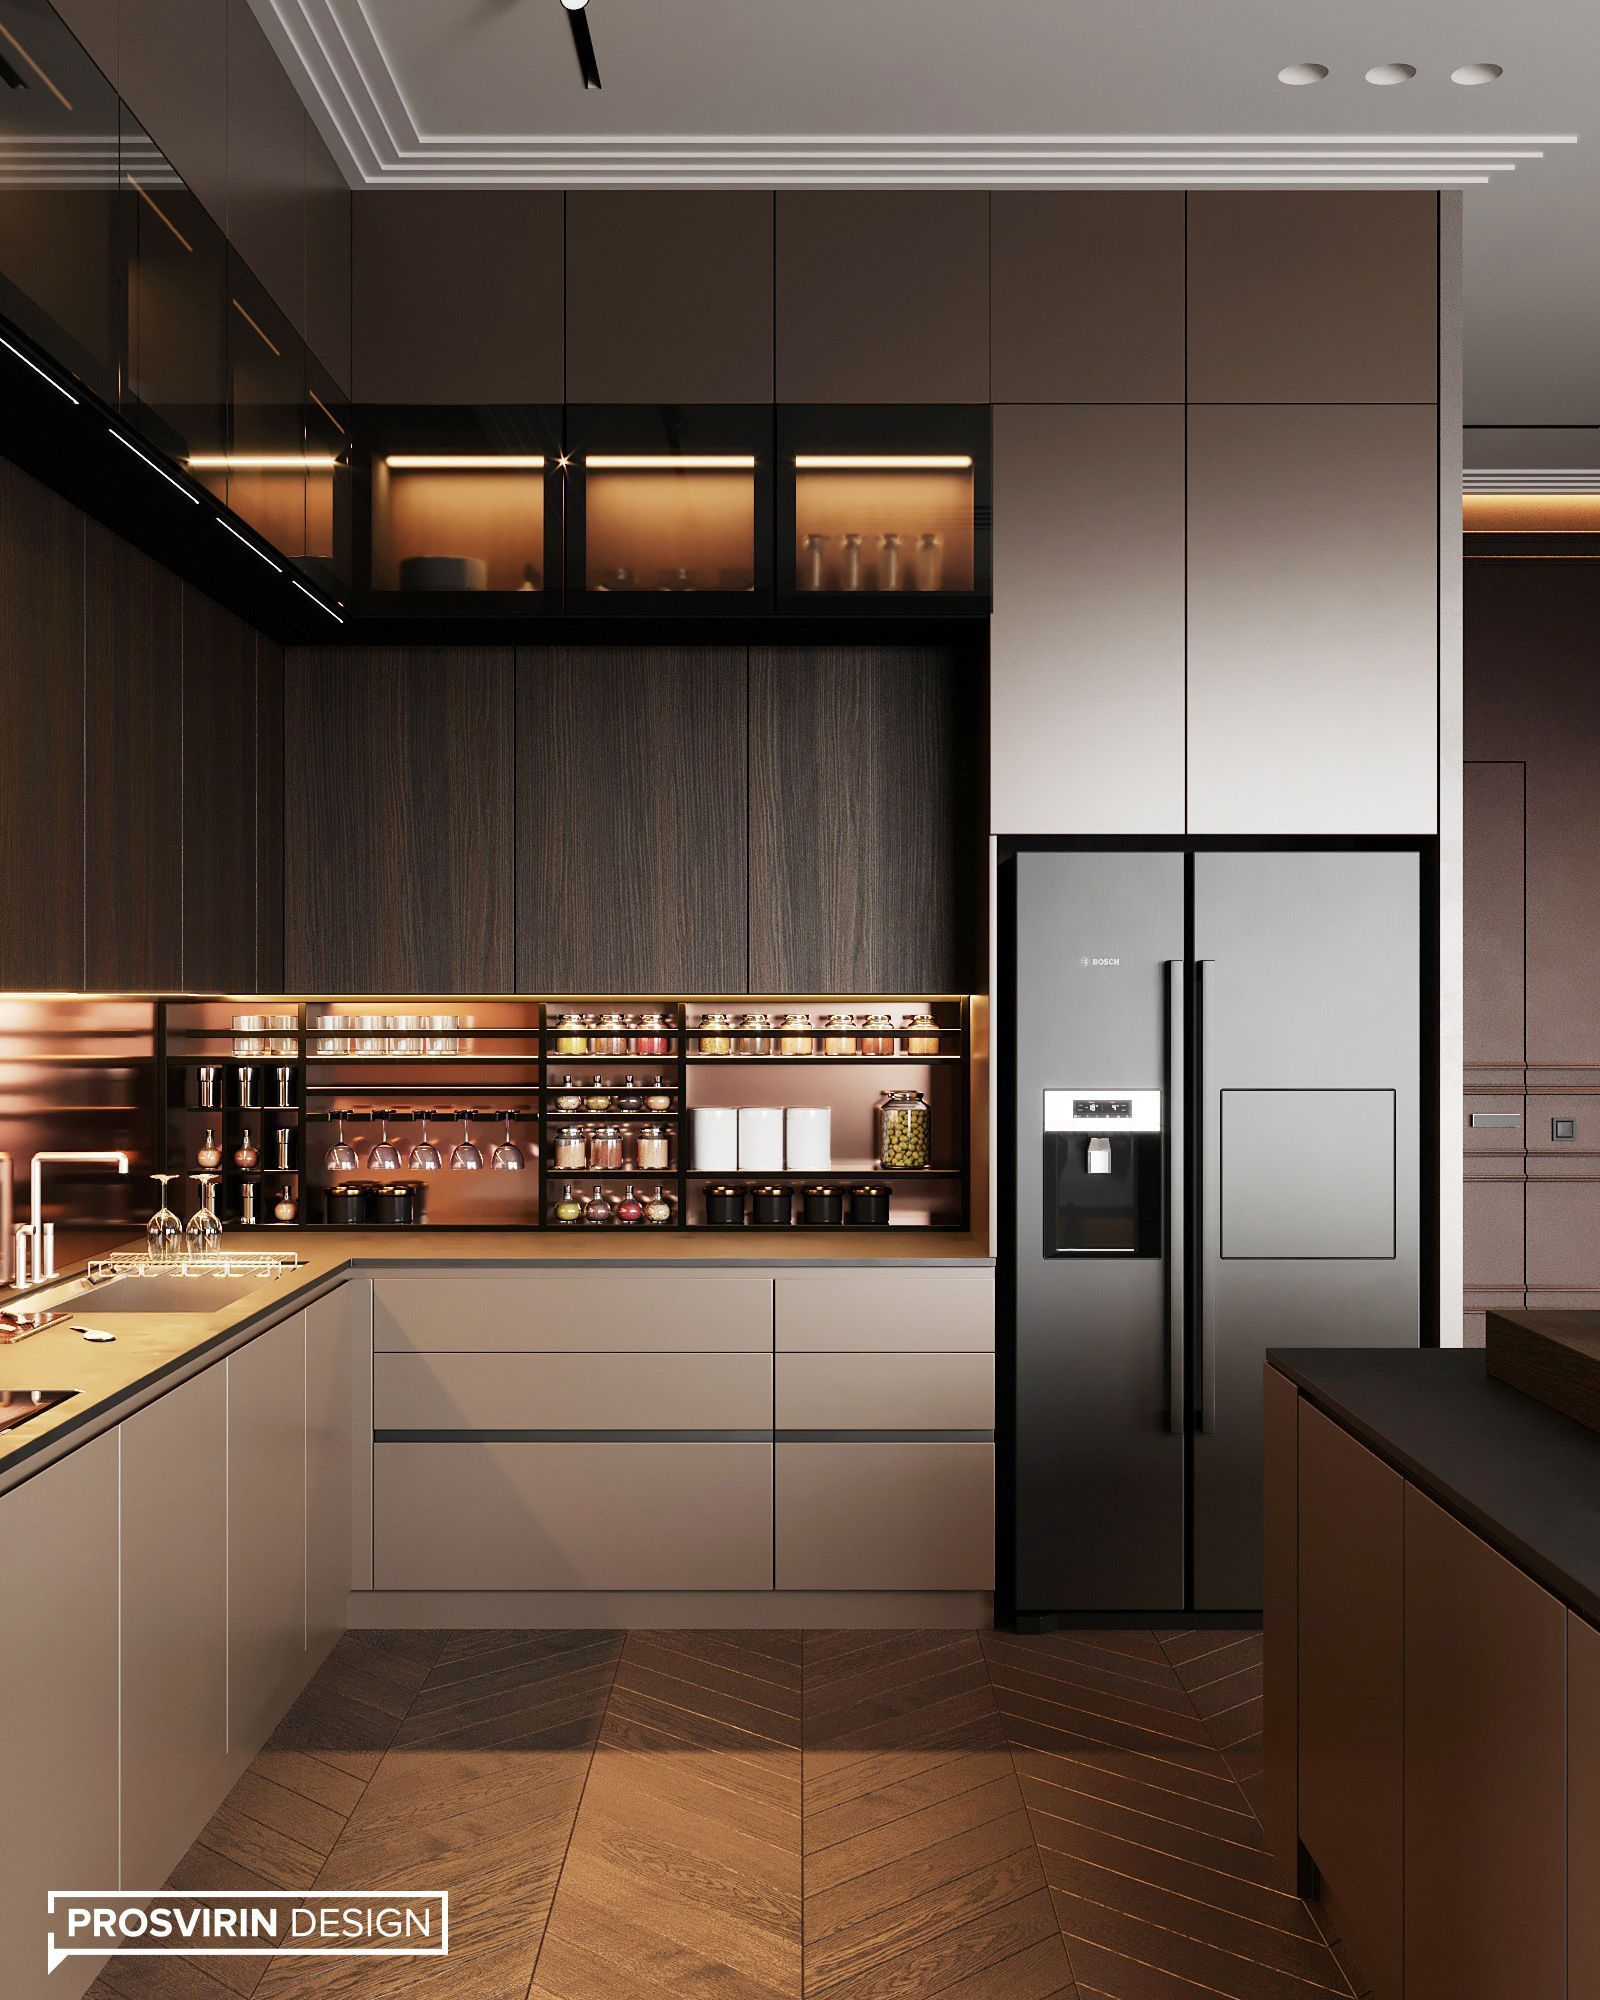 Contemporary Kitchen Design Benefits And Types Of Contemporary Kitchen Contemporary Kitchen Design Kitchen Room Design Elegant Kitchen Design Kitchen Design